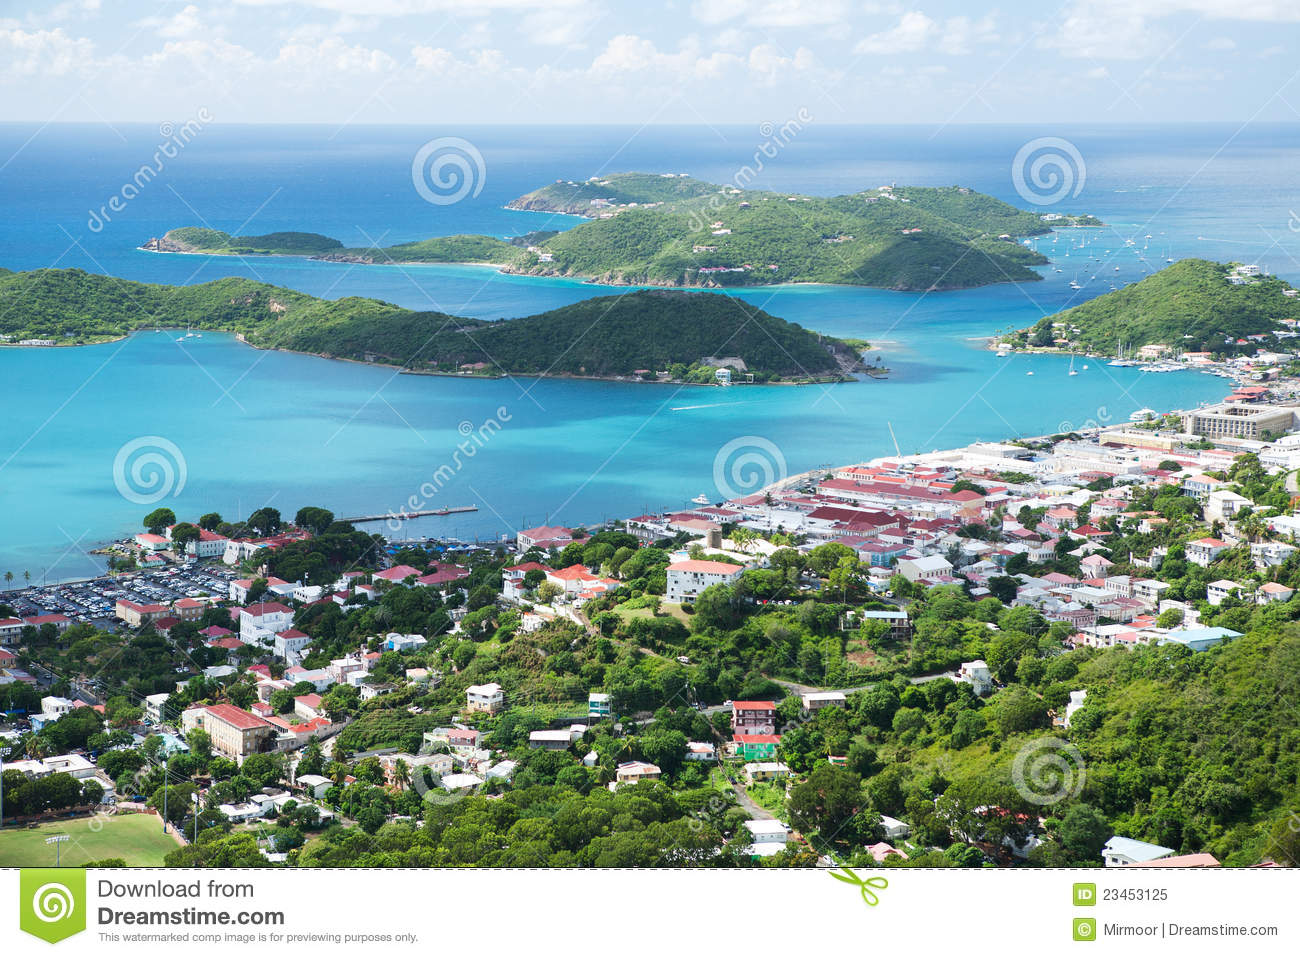 charlotte amalie country